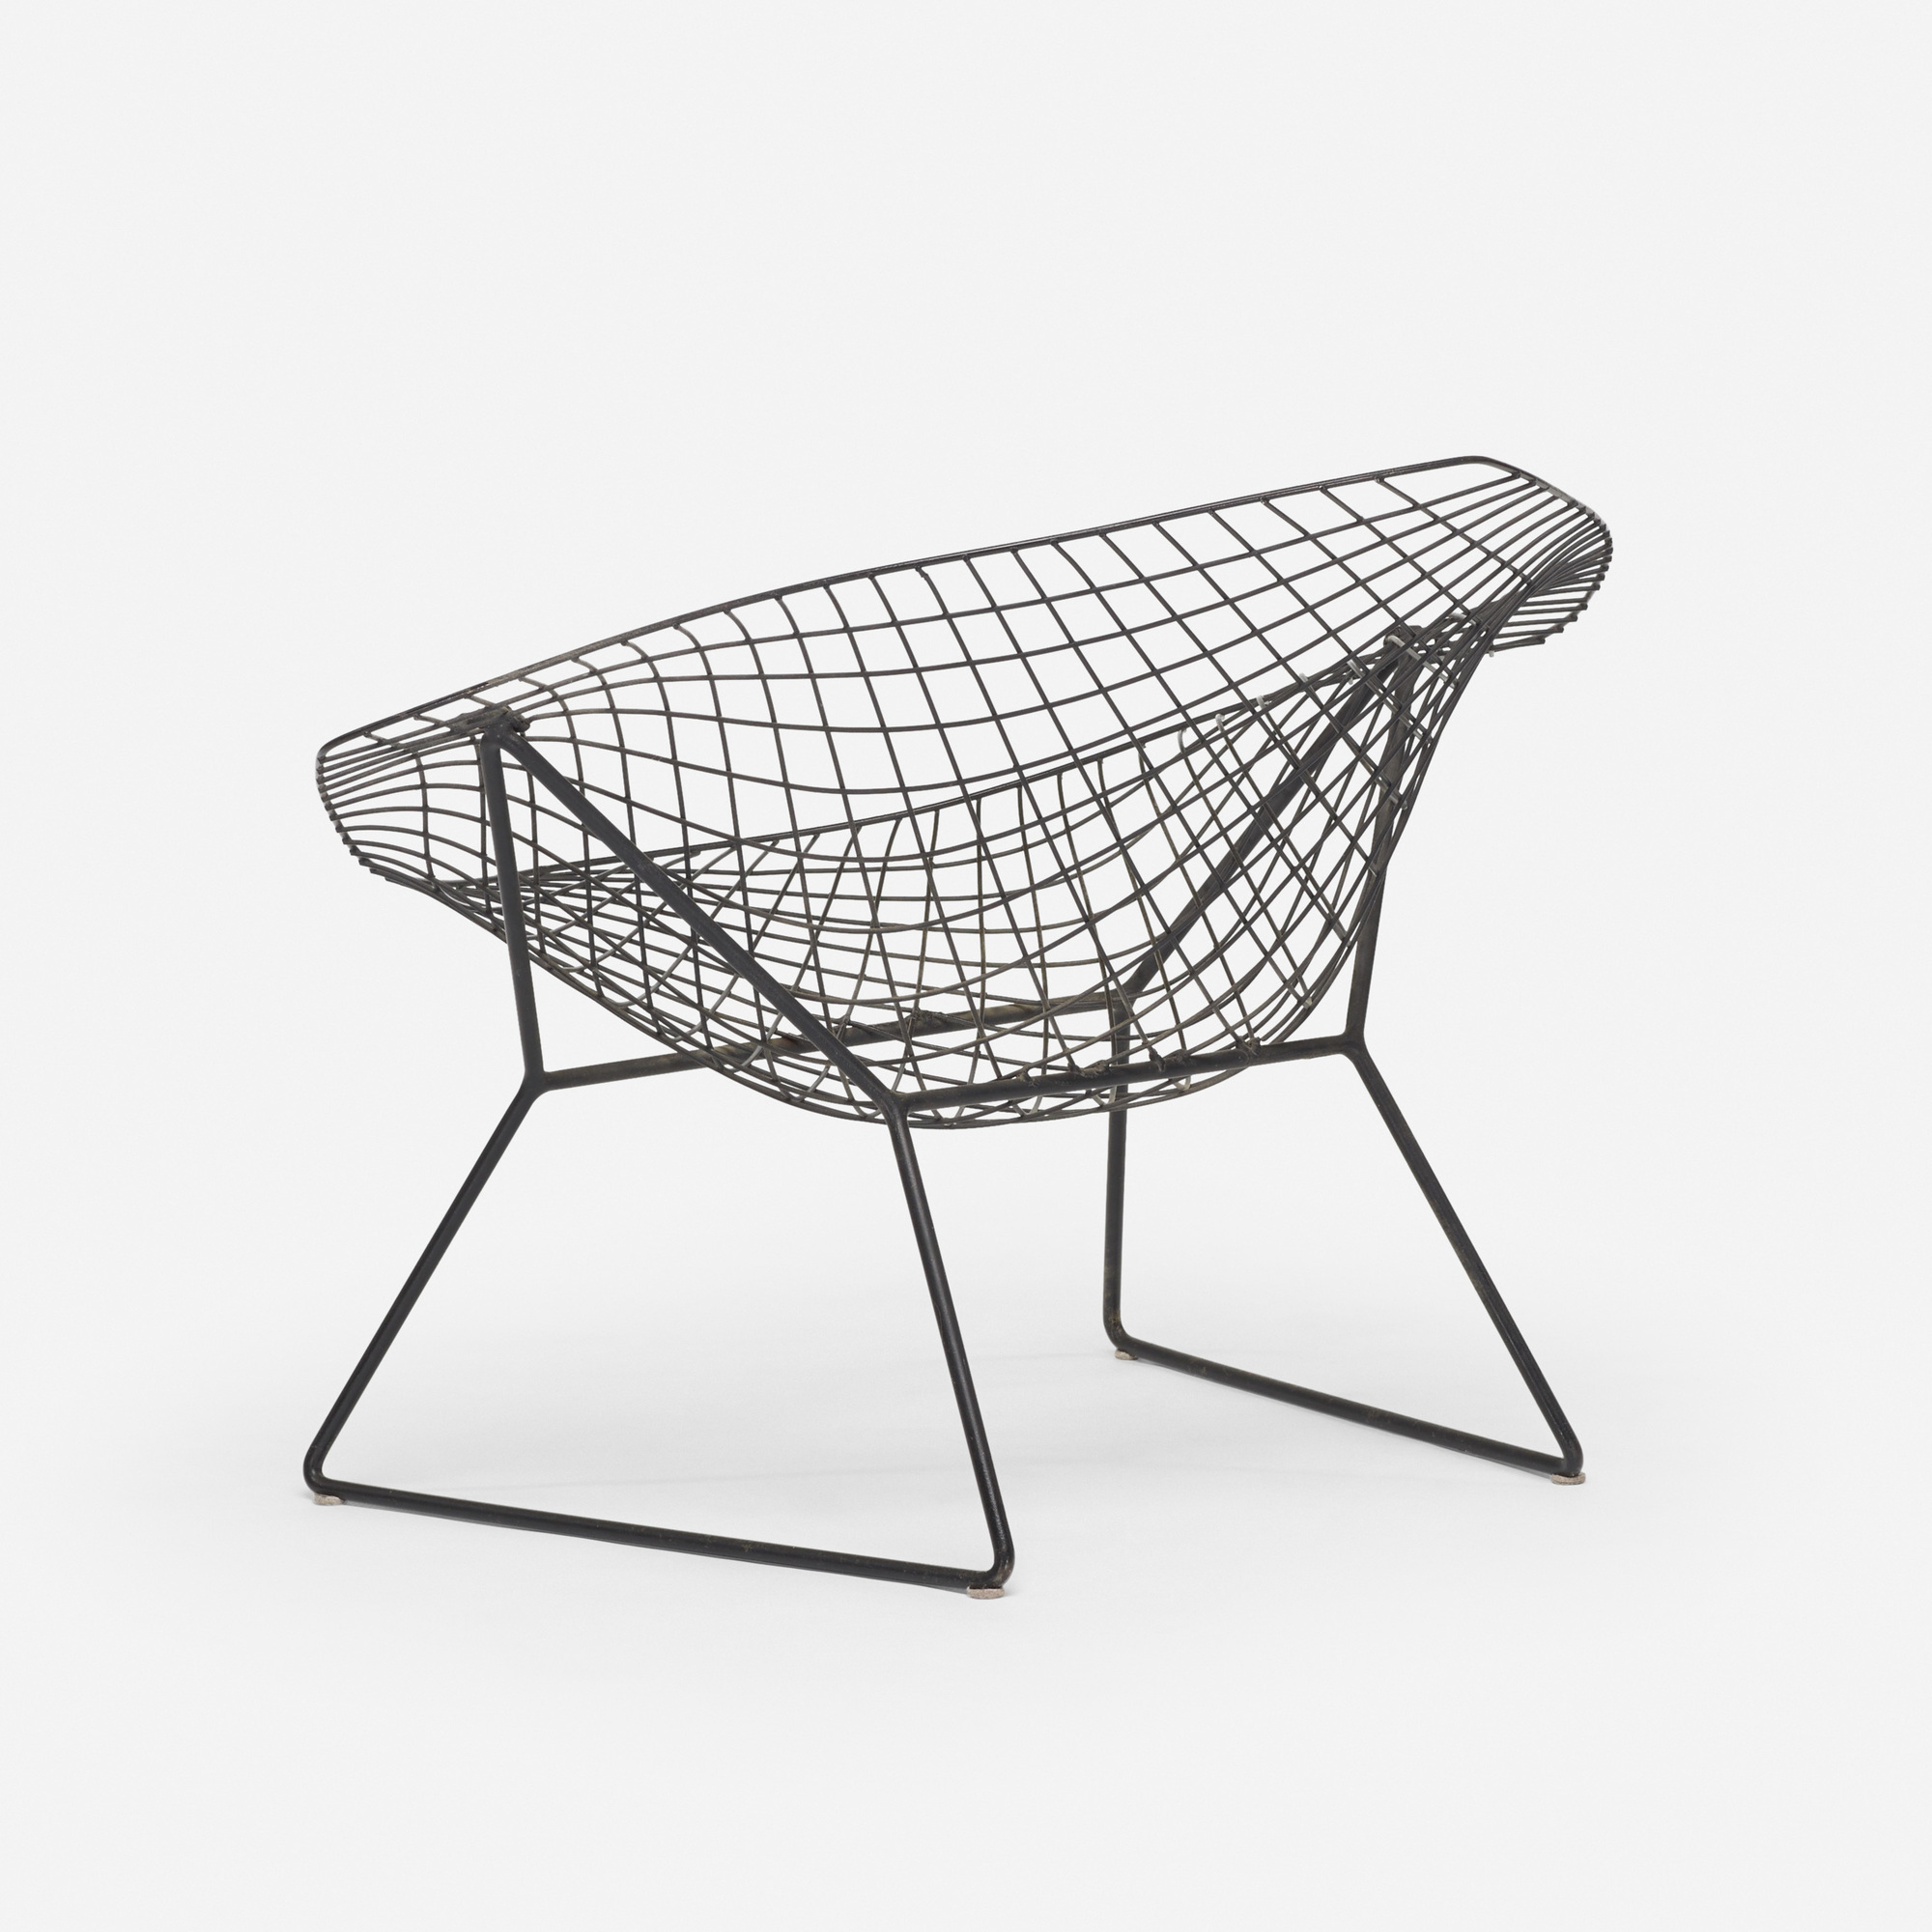 139 harry bertoia prototype diamond chair. Black Bedroom Furniture Sets. Home Design Ideas